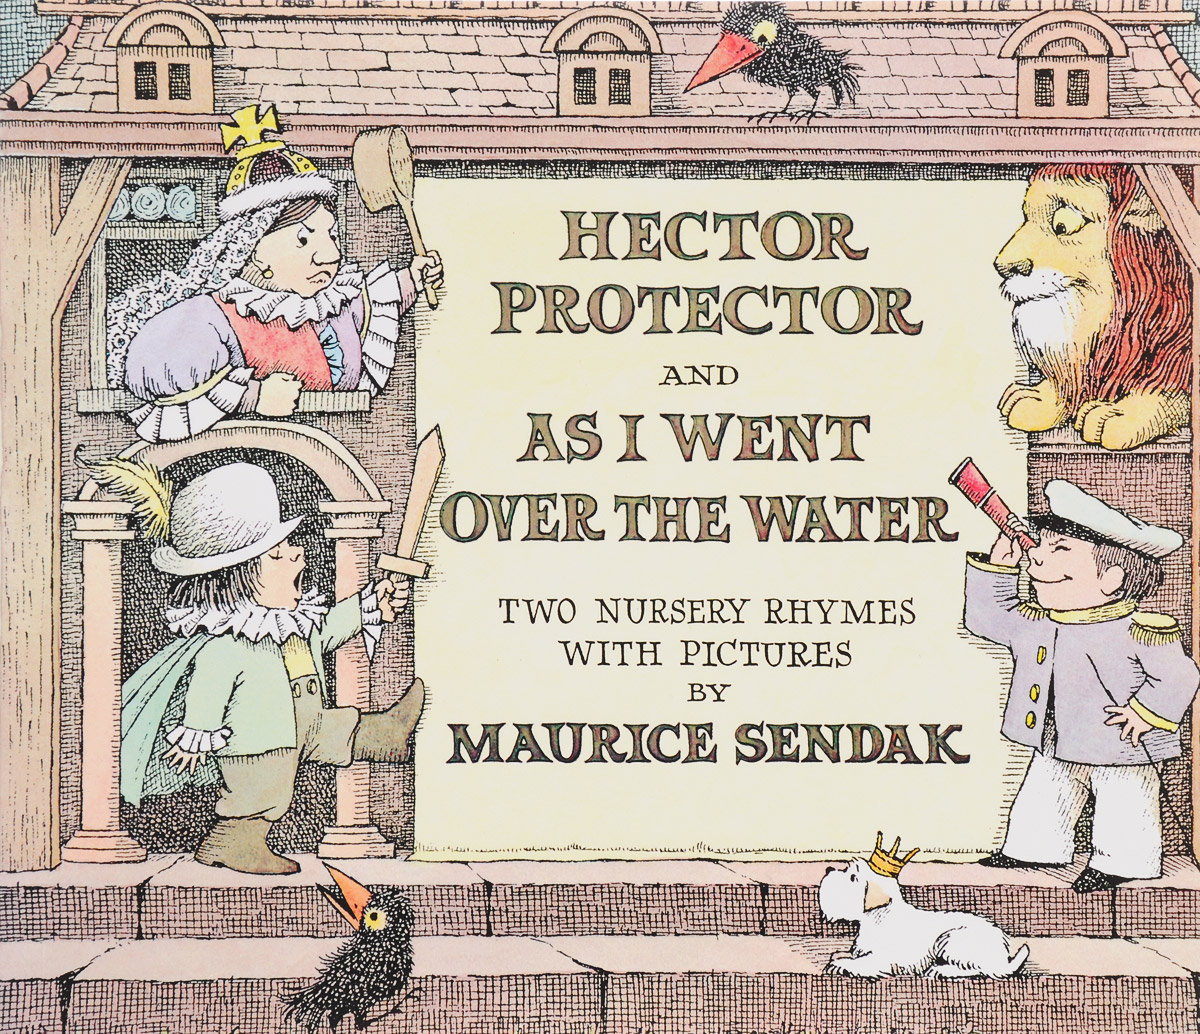 Hector Protector: As I Went Over the Water